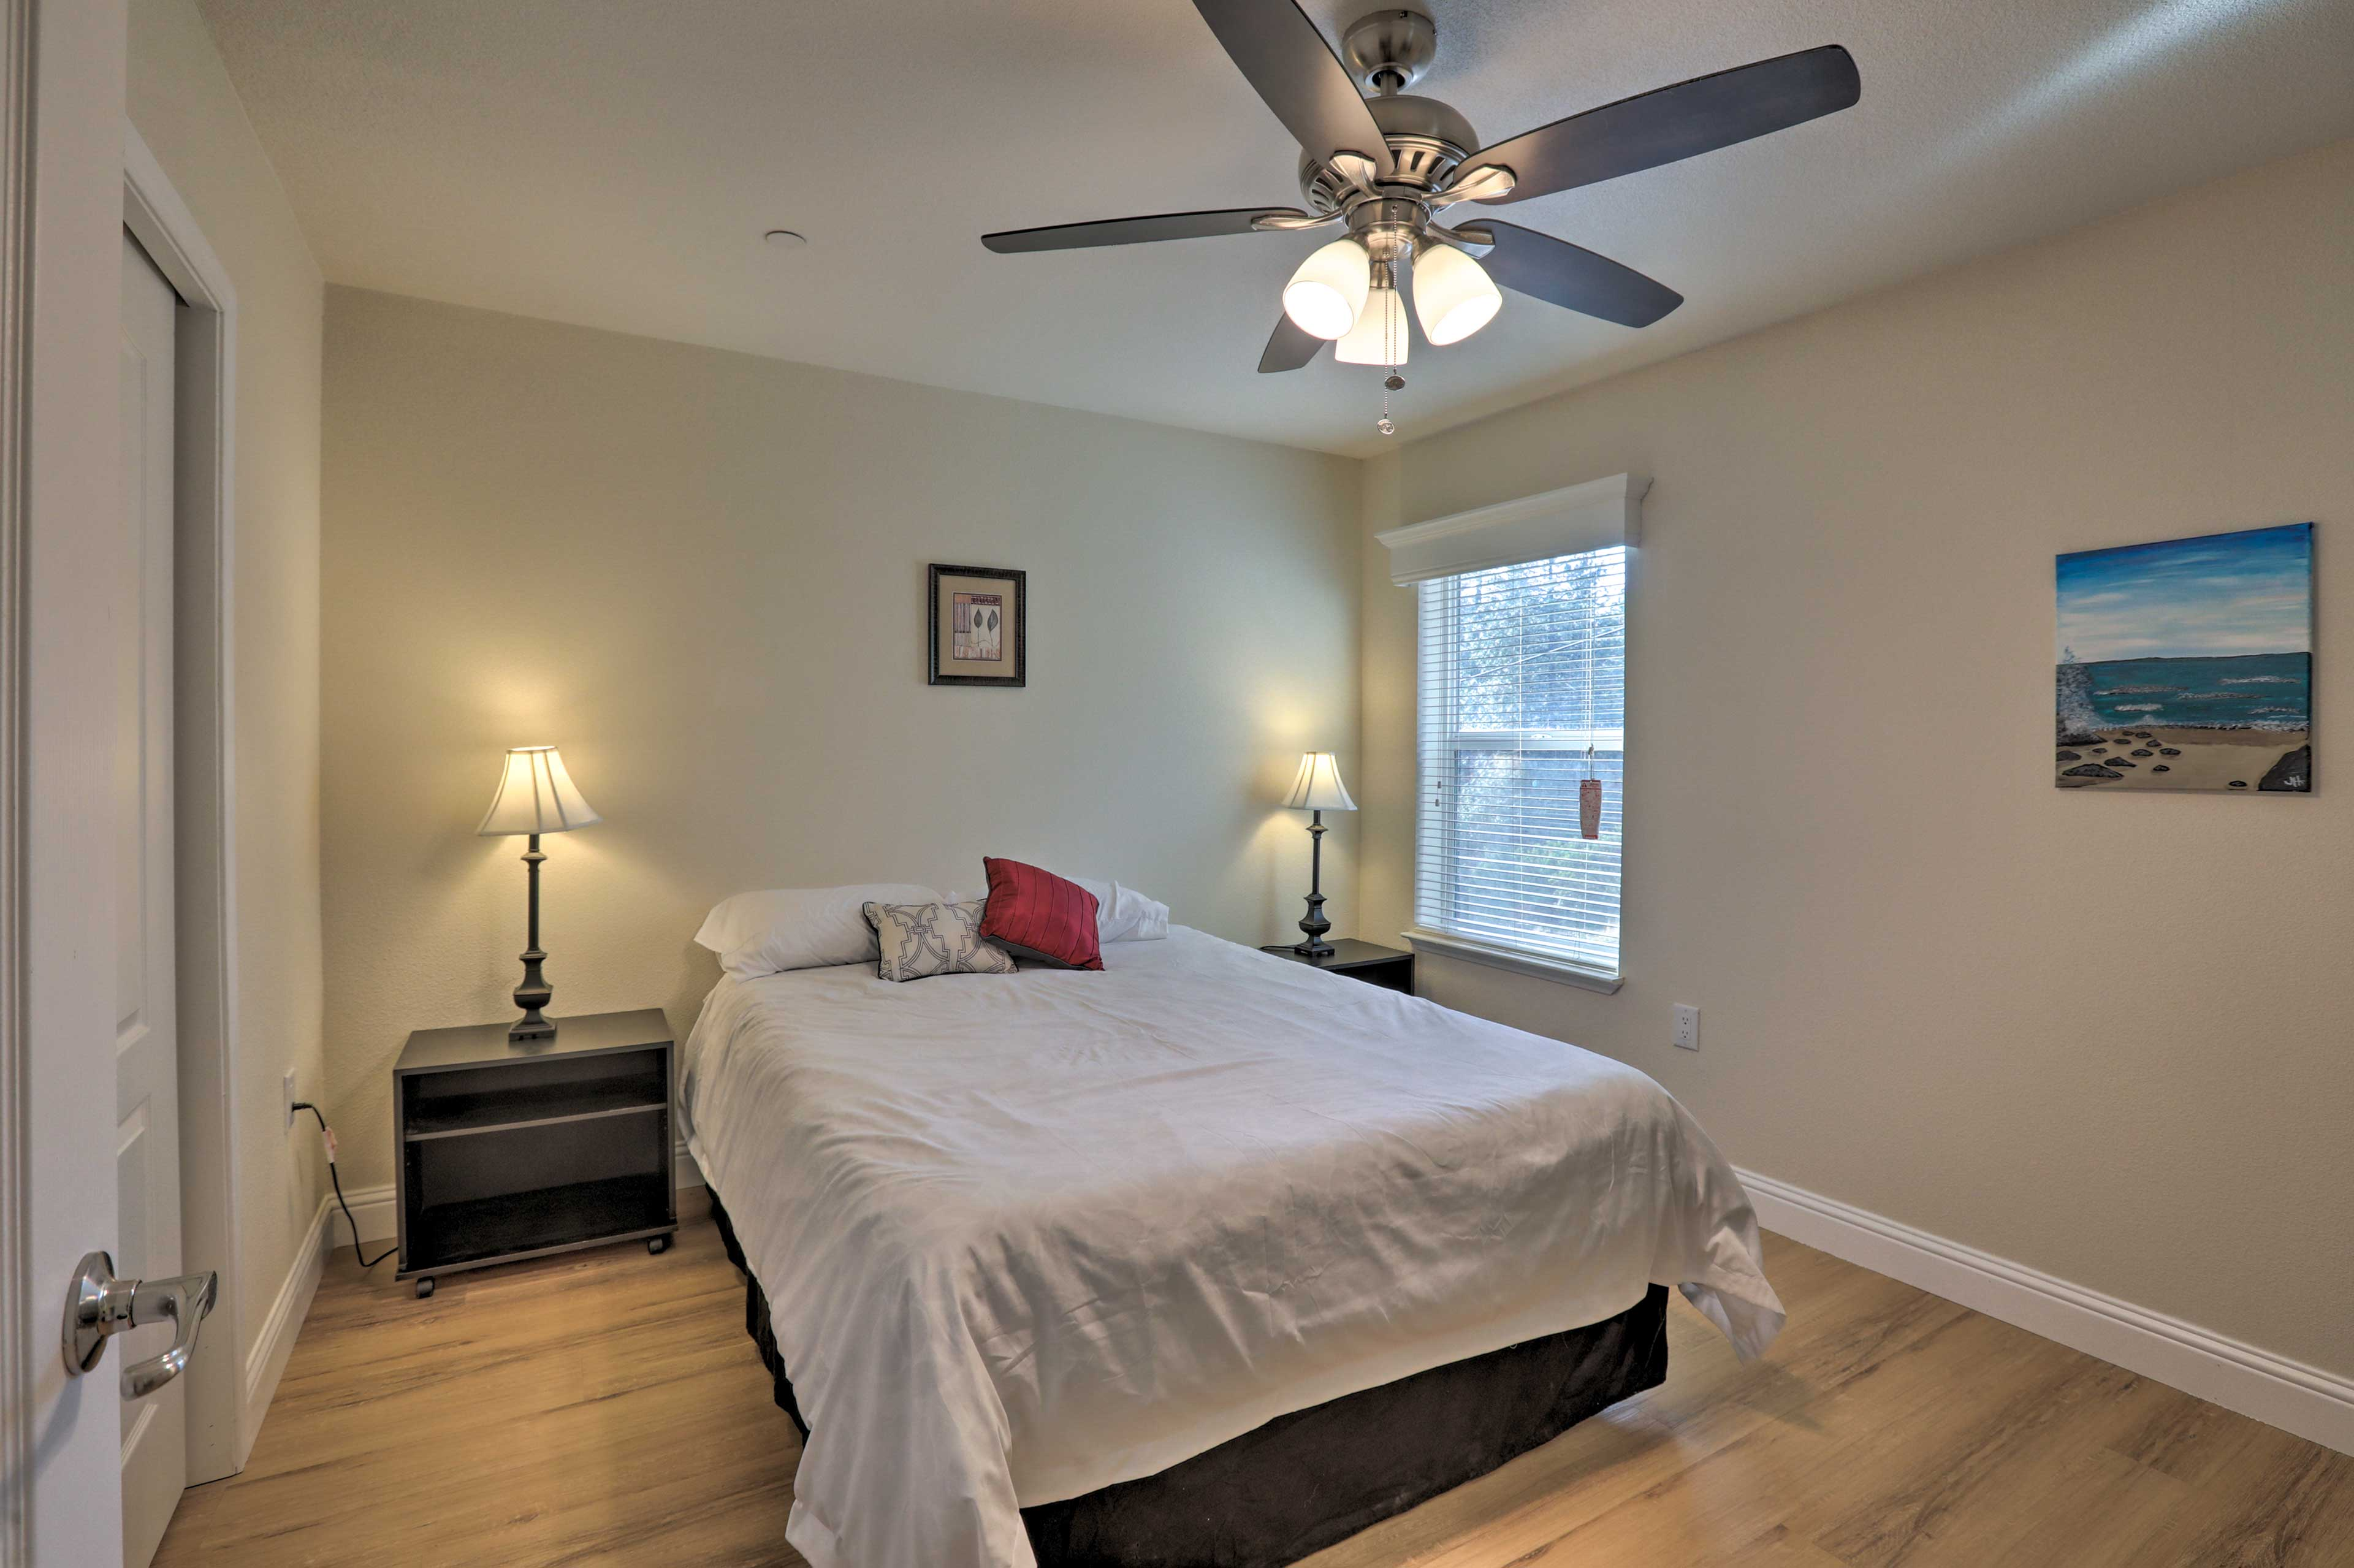 Two guests can share this queen bed.